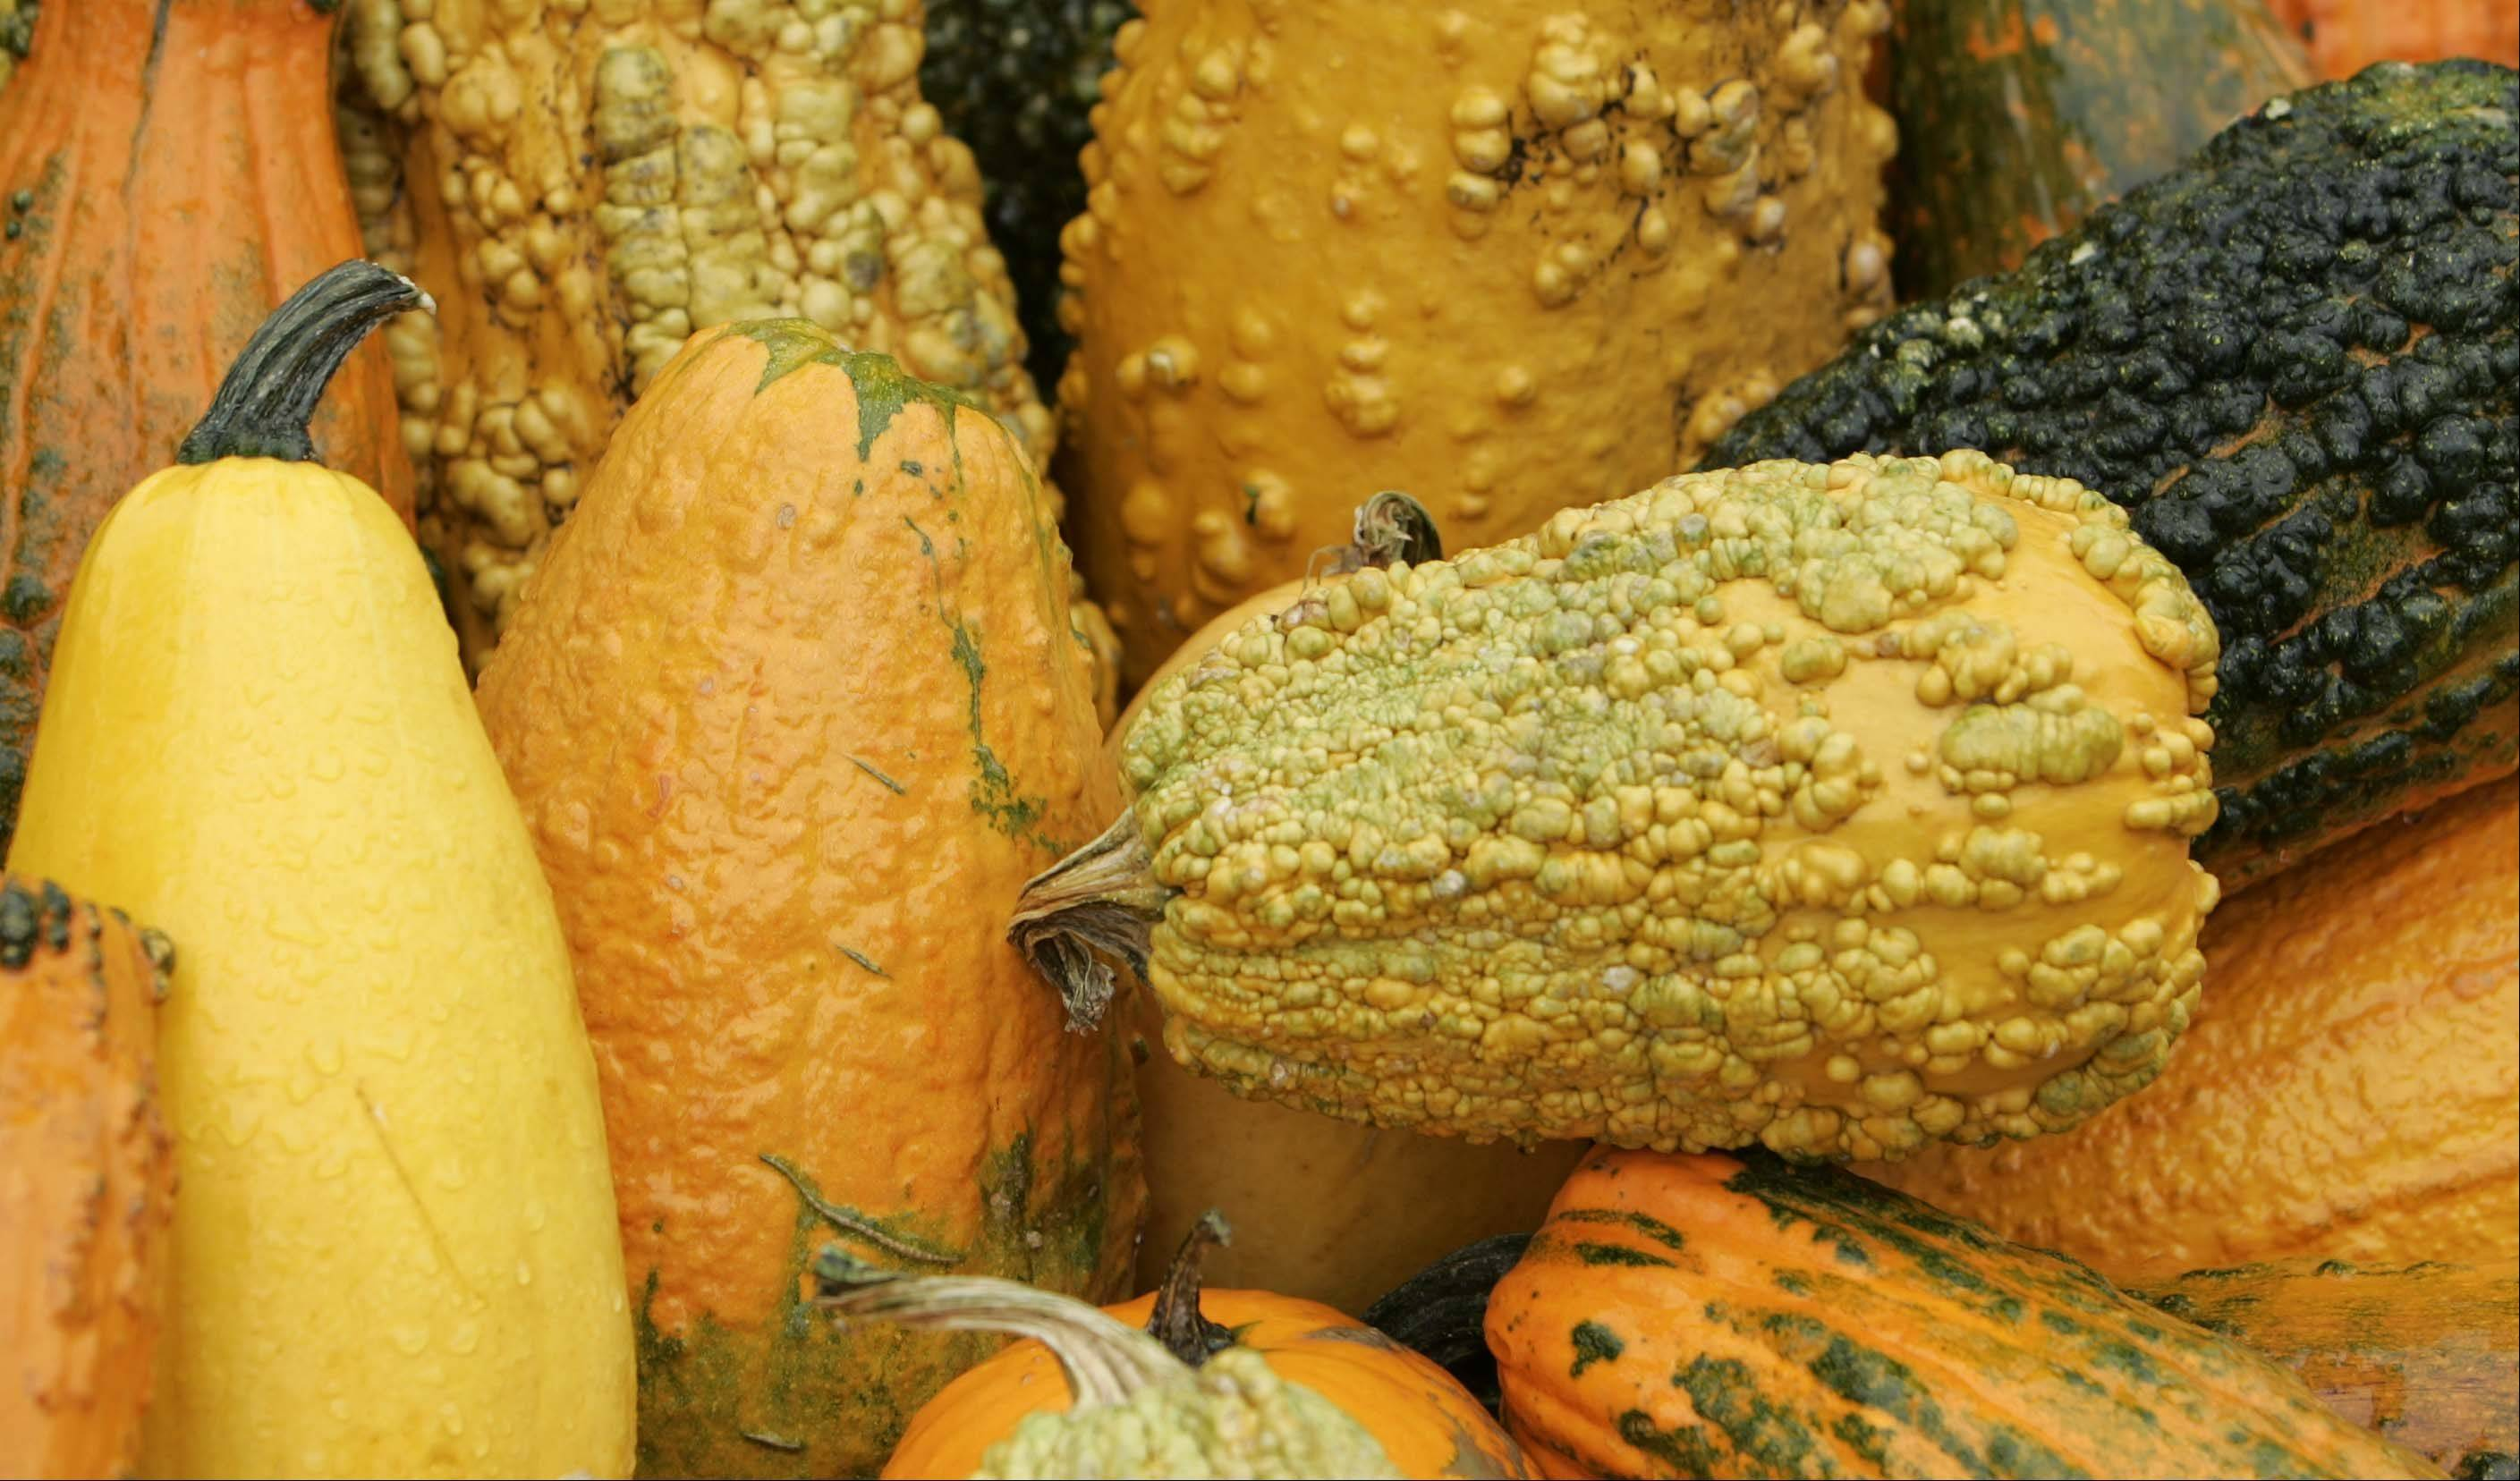 Extra-large bumpy gourds are available for your fall decor needs at Randy's Vegetables in Sleepy Hollow.